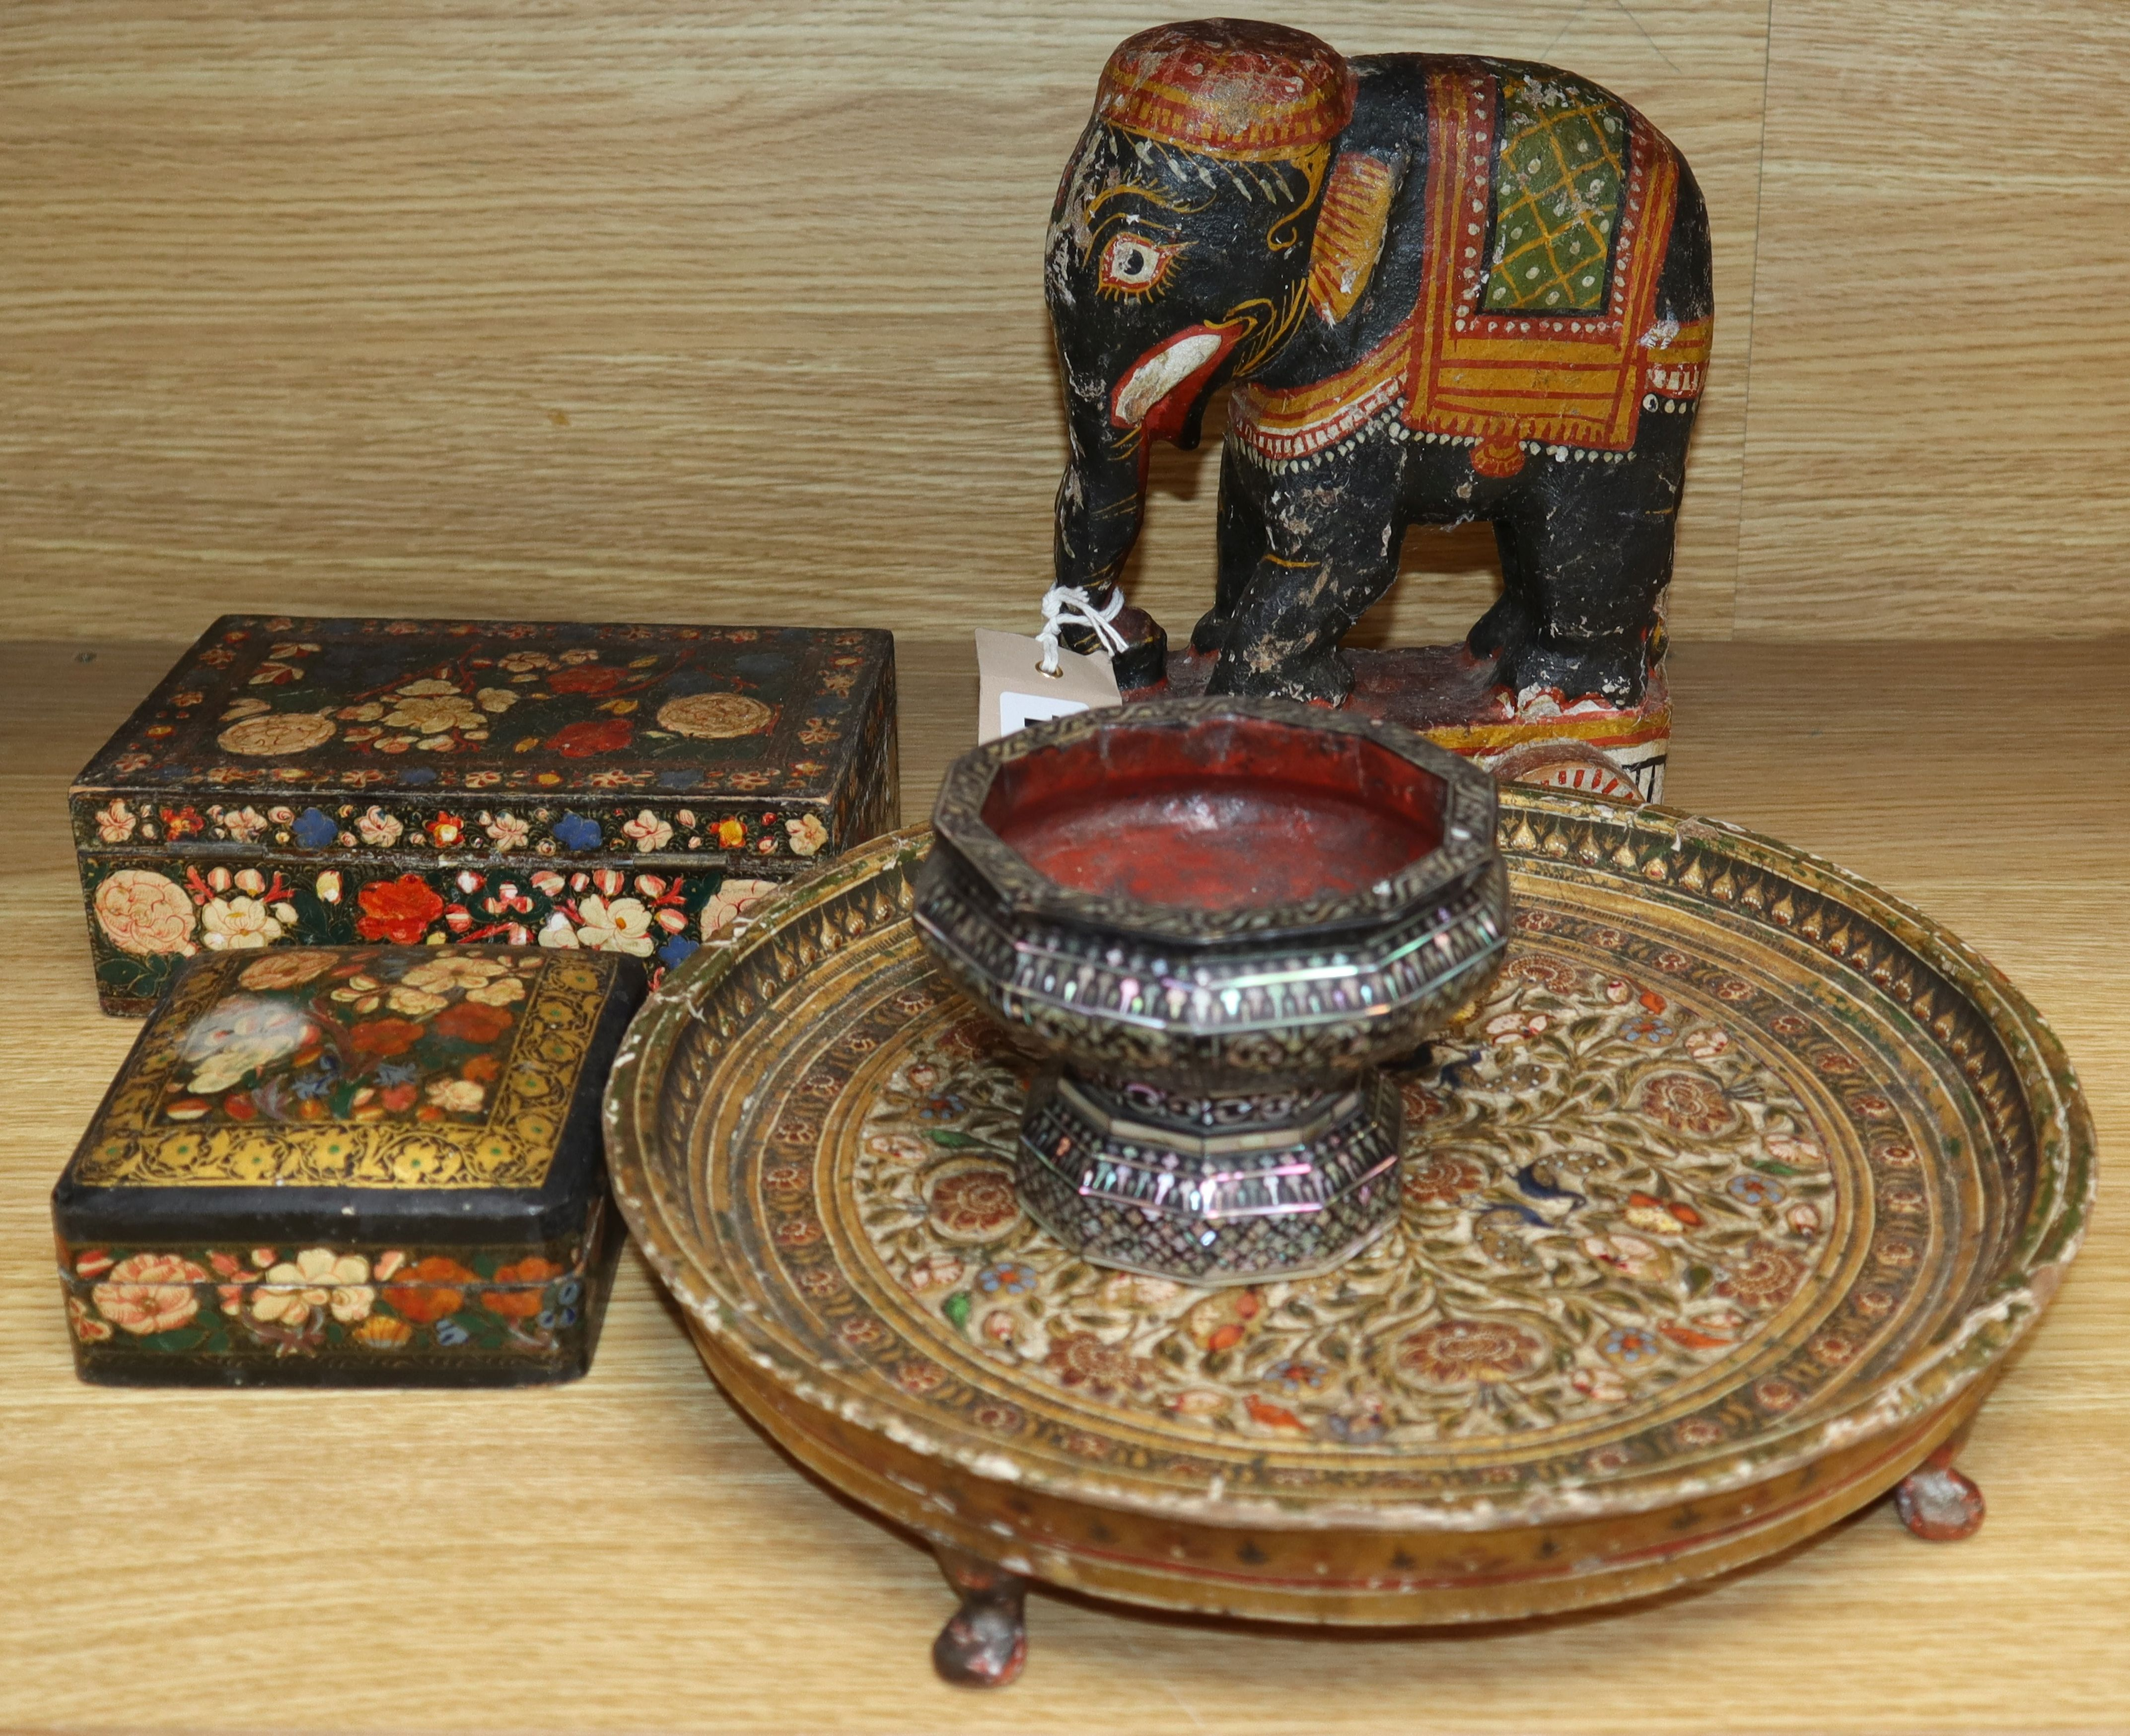 Lot 111 - A Kashmiri footed tray, two similar boxes, a Rajasthan toy elephant and a lacquer and abalone footed